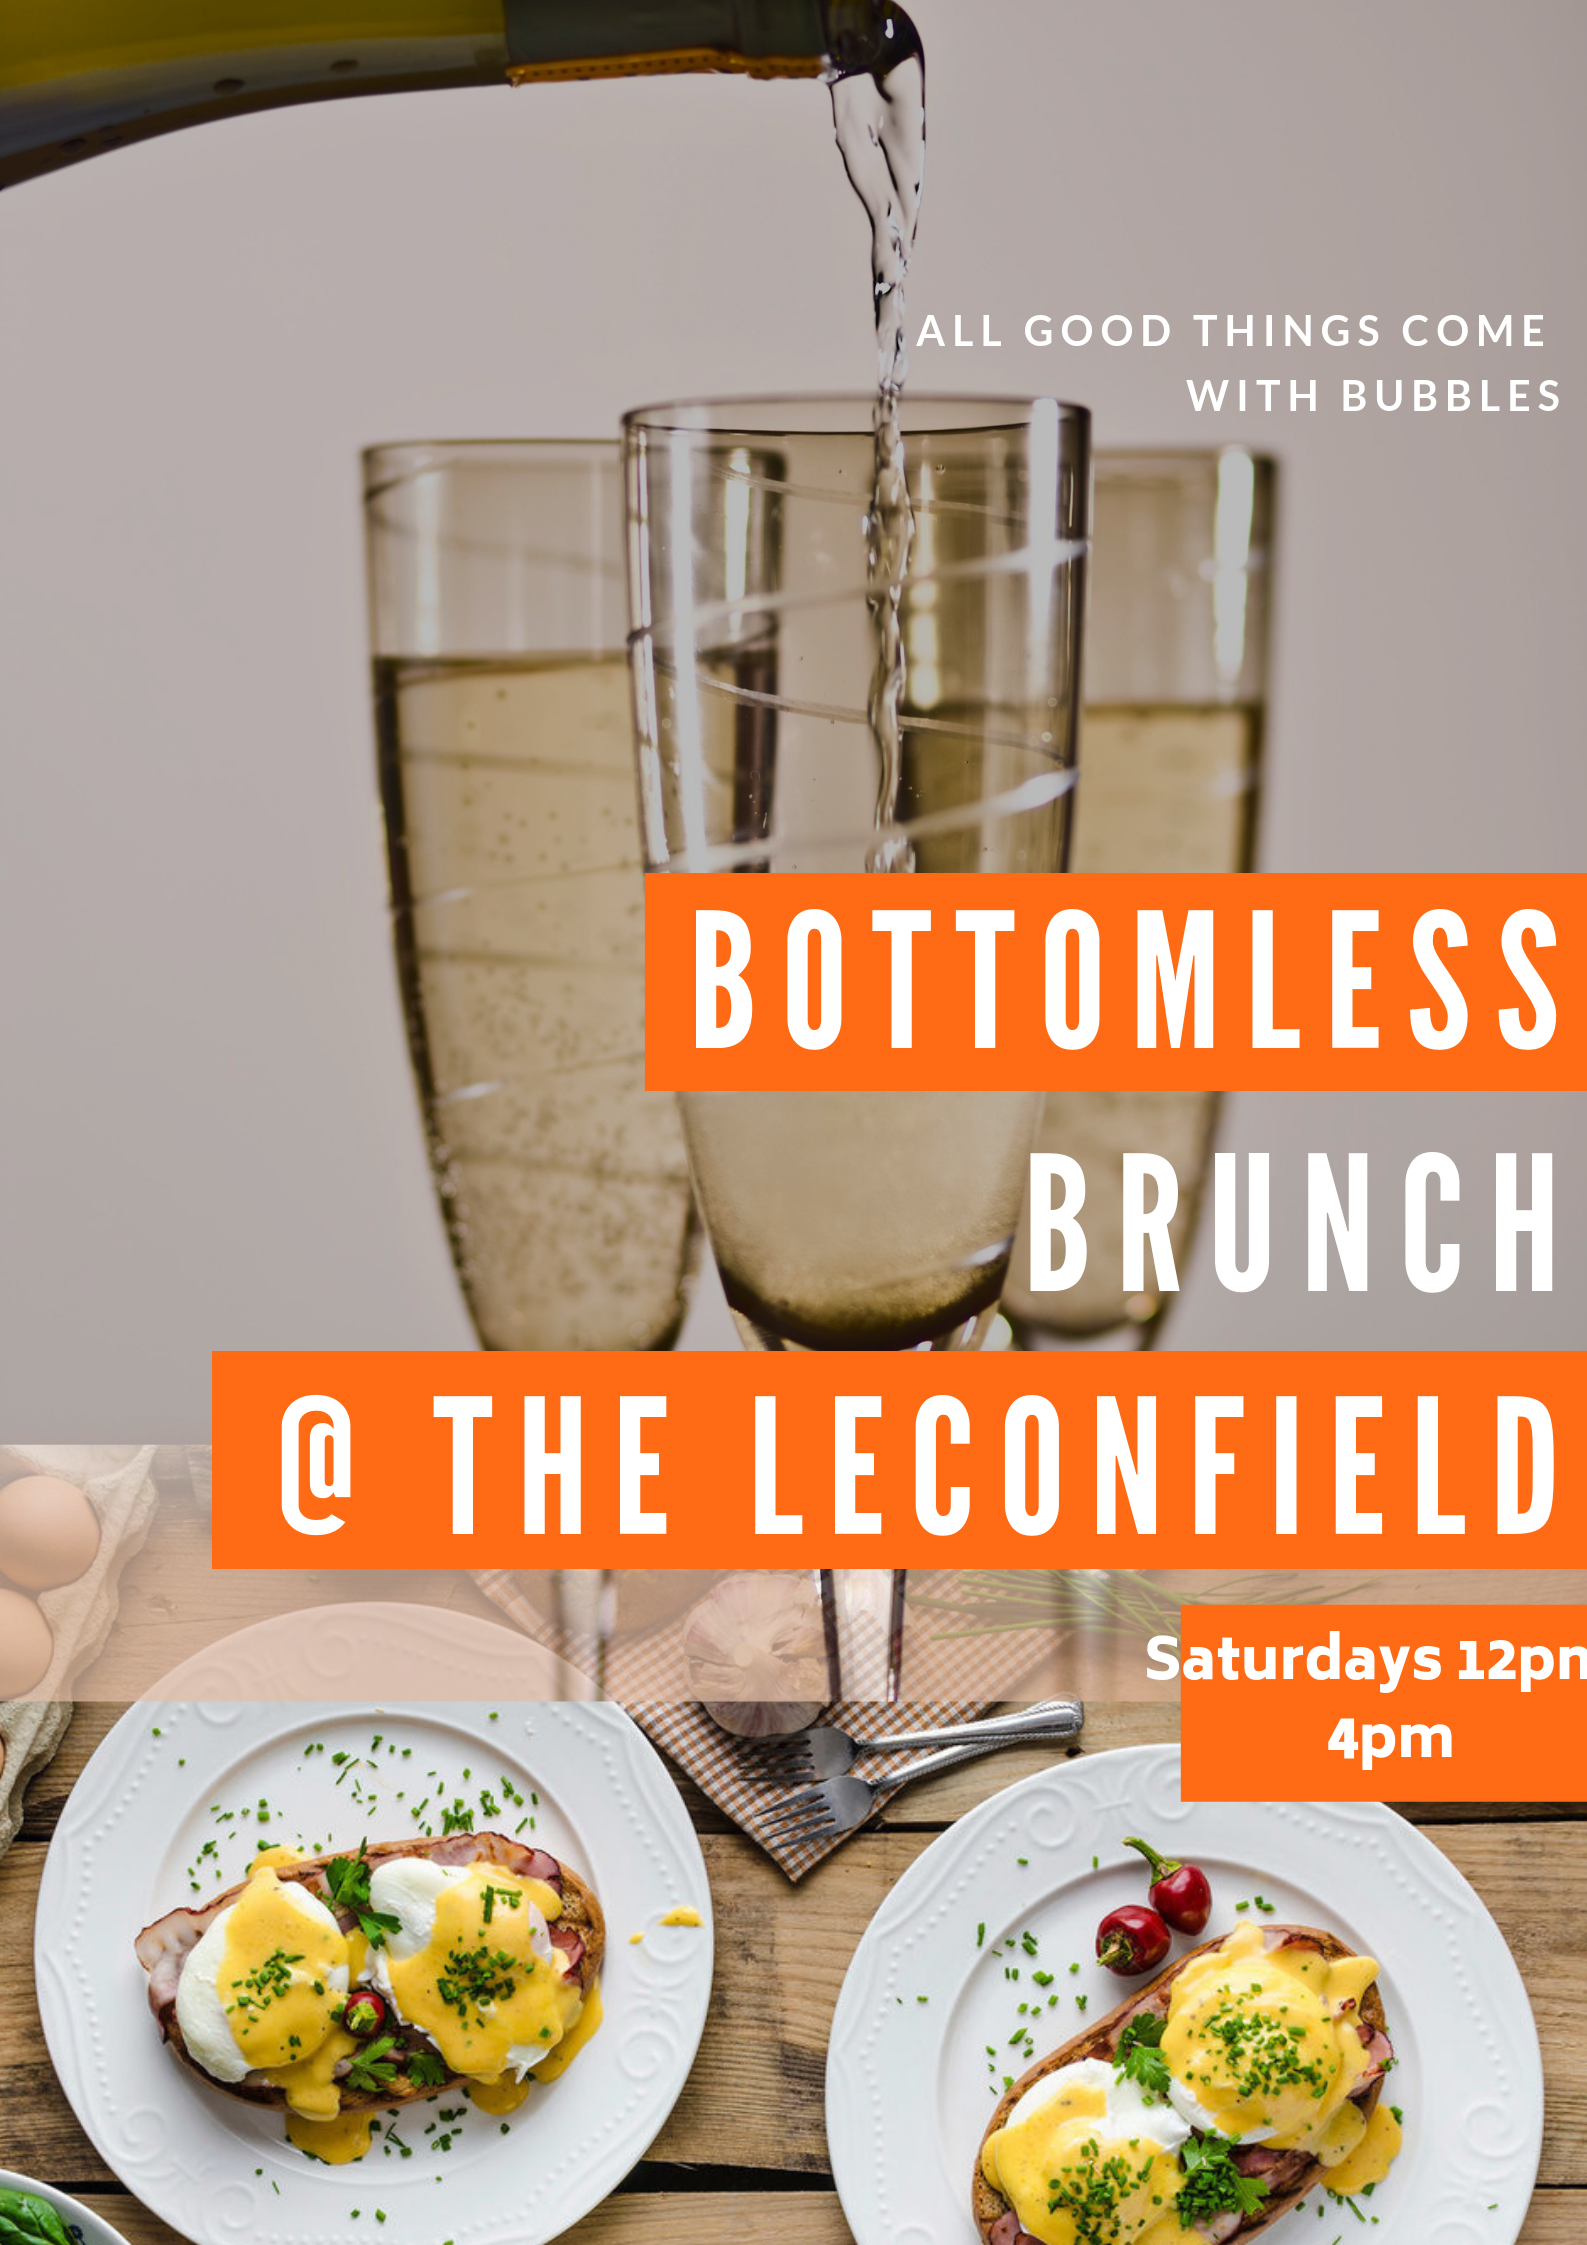 Bottomless brunch @ the leconfield.png